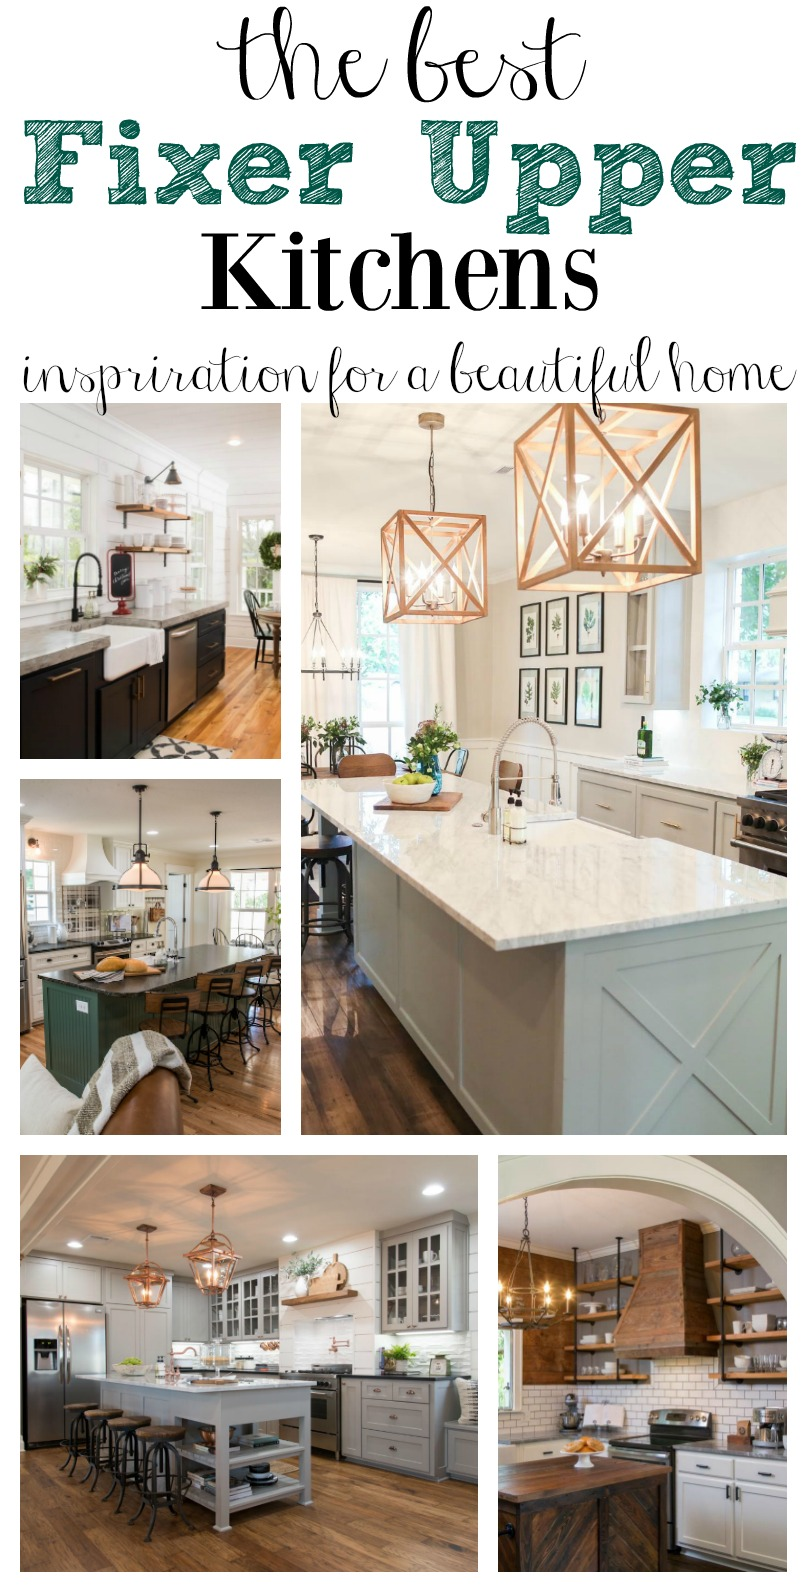 Images of fixer upper kitchens - Images Of Fixer Upper Kitchens 34